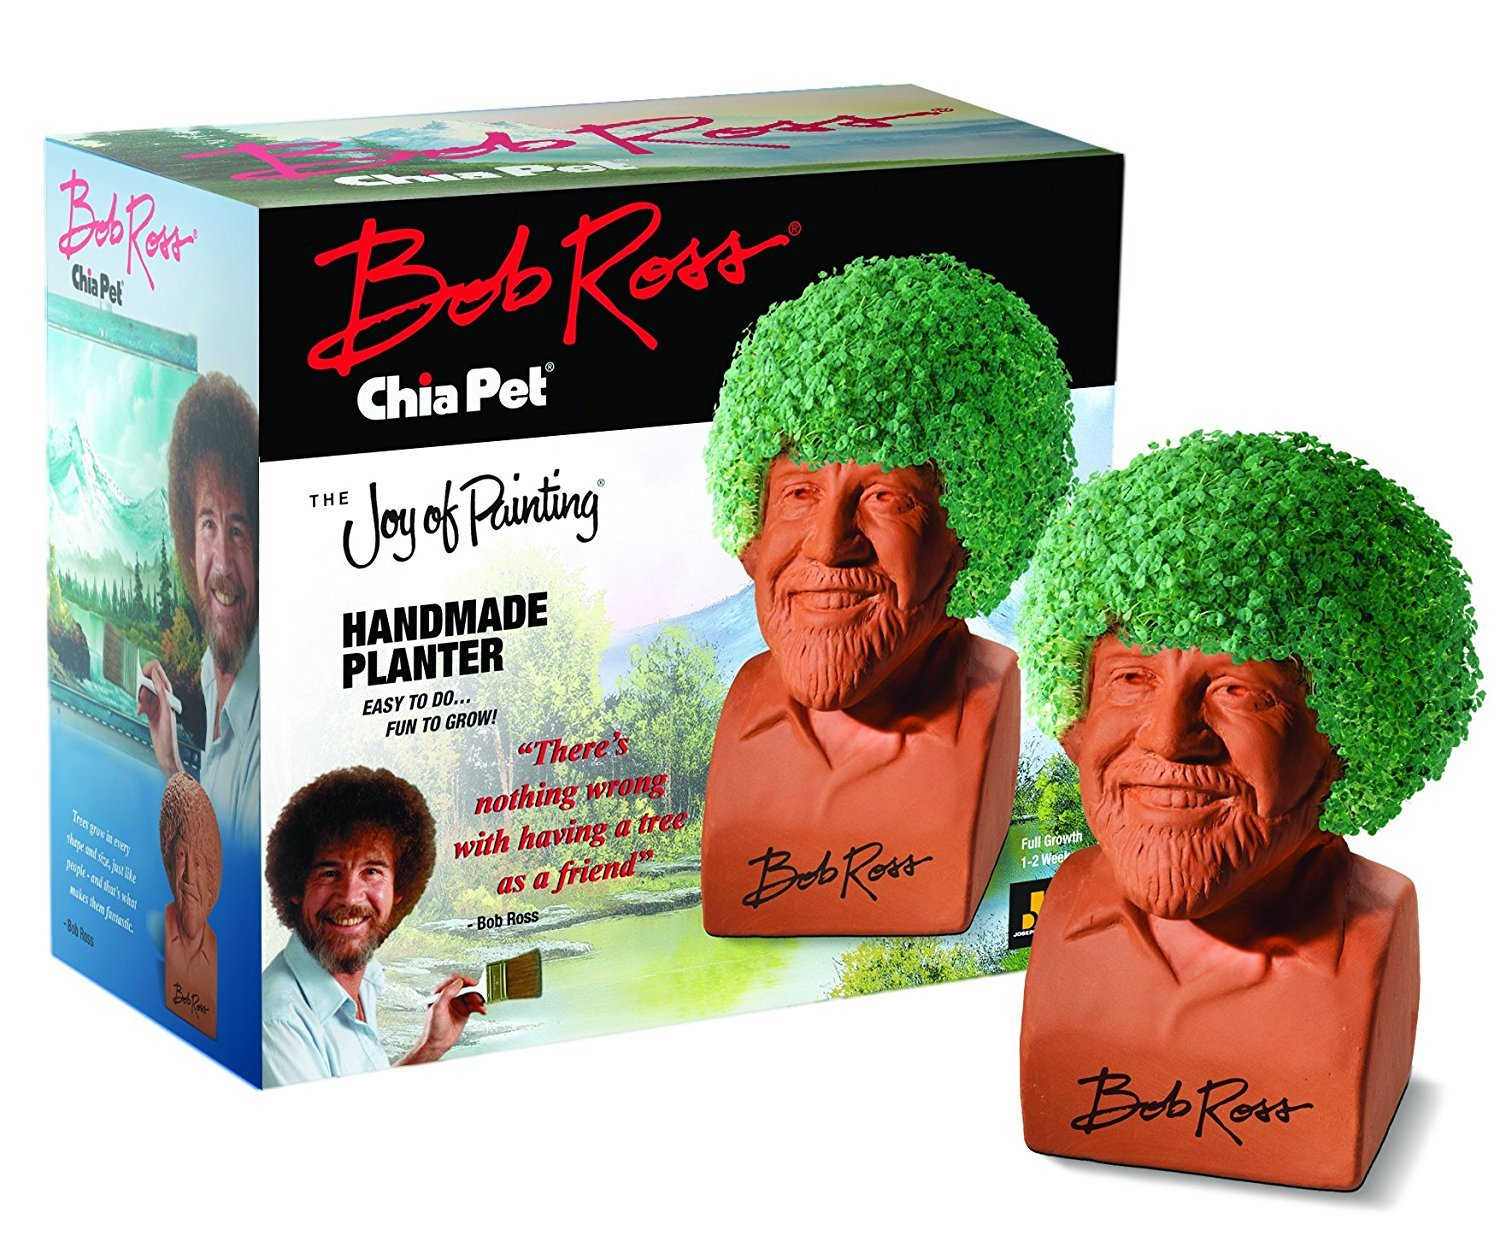 Chia Pet Bob Ross, the Joy of Painting Decorative Pottery Planter, Easy to Do and Fun to Grow, Novelty Gift, Perfect for Any Occasion (Contains Packets for 3 Plantings) by Chia